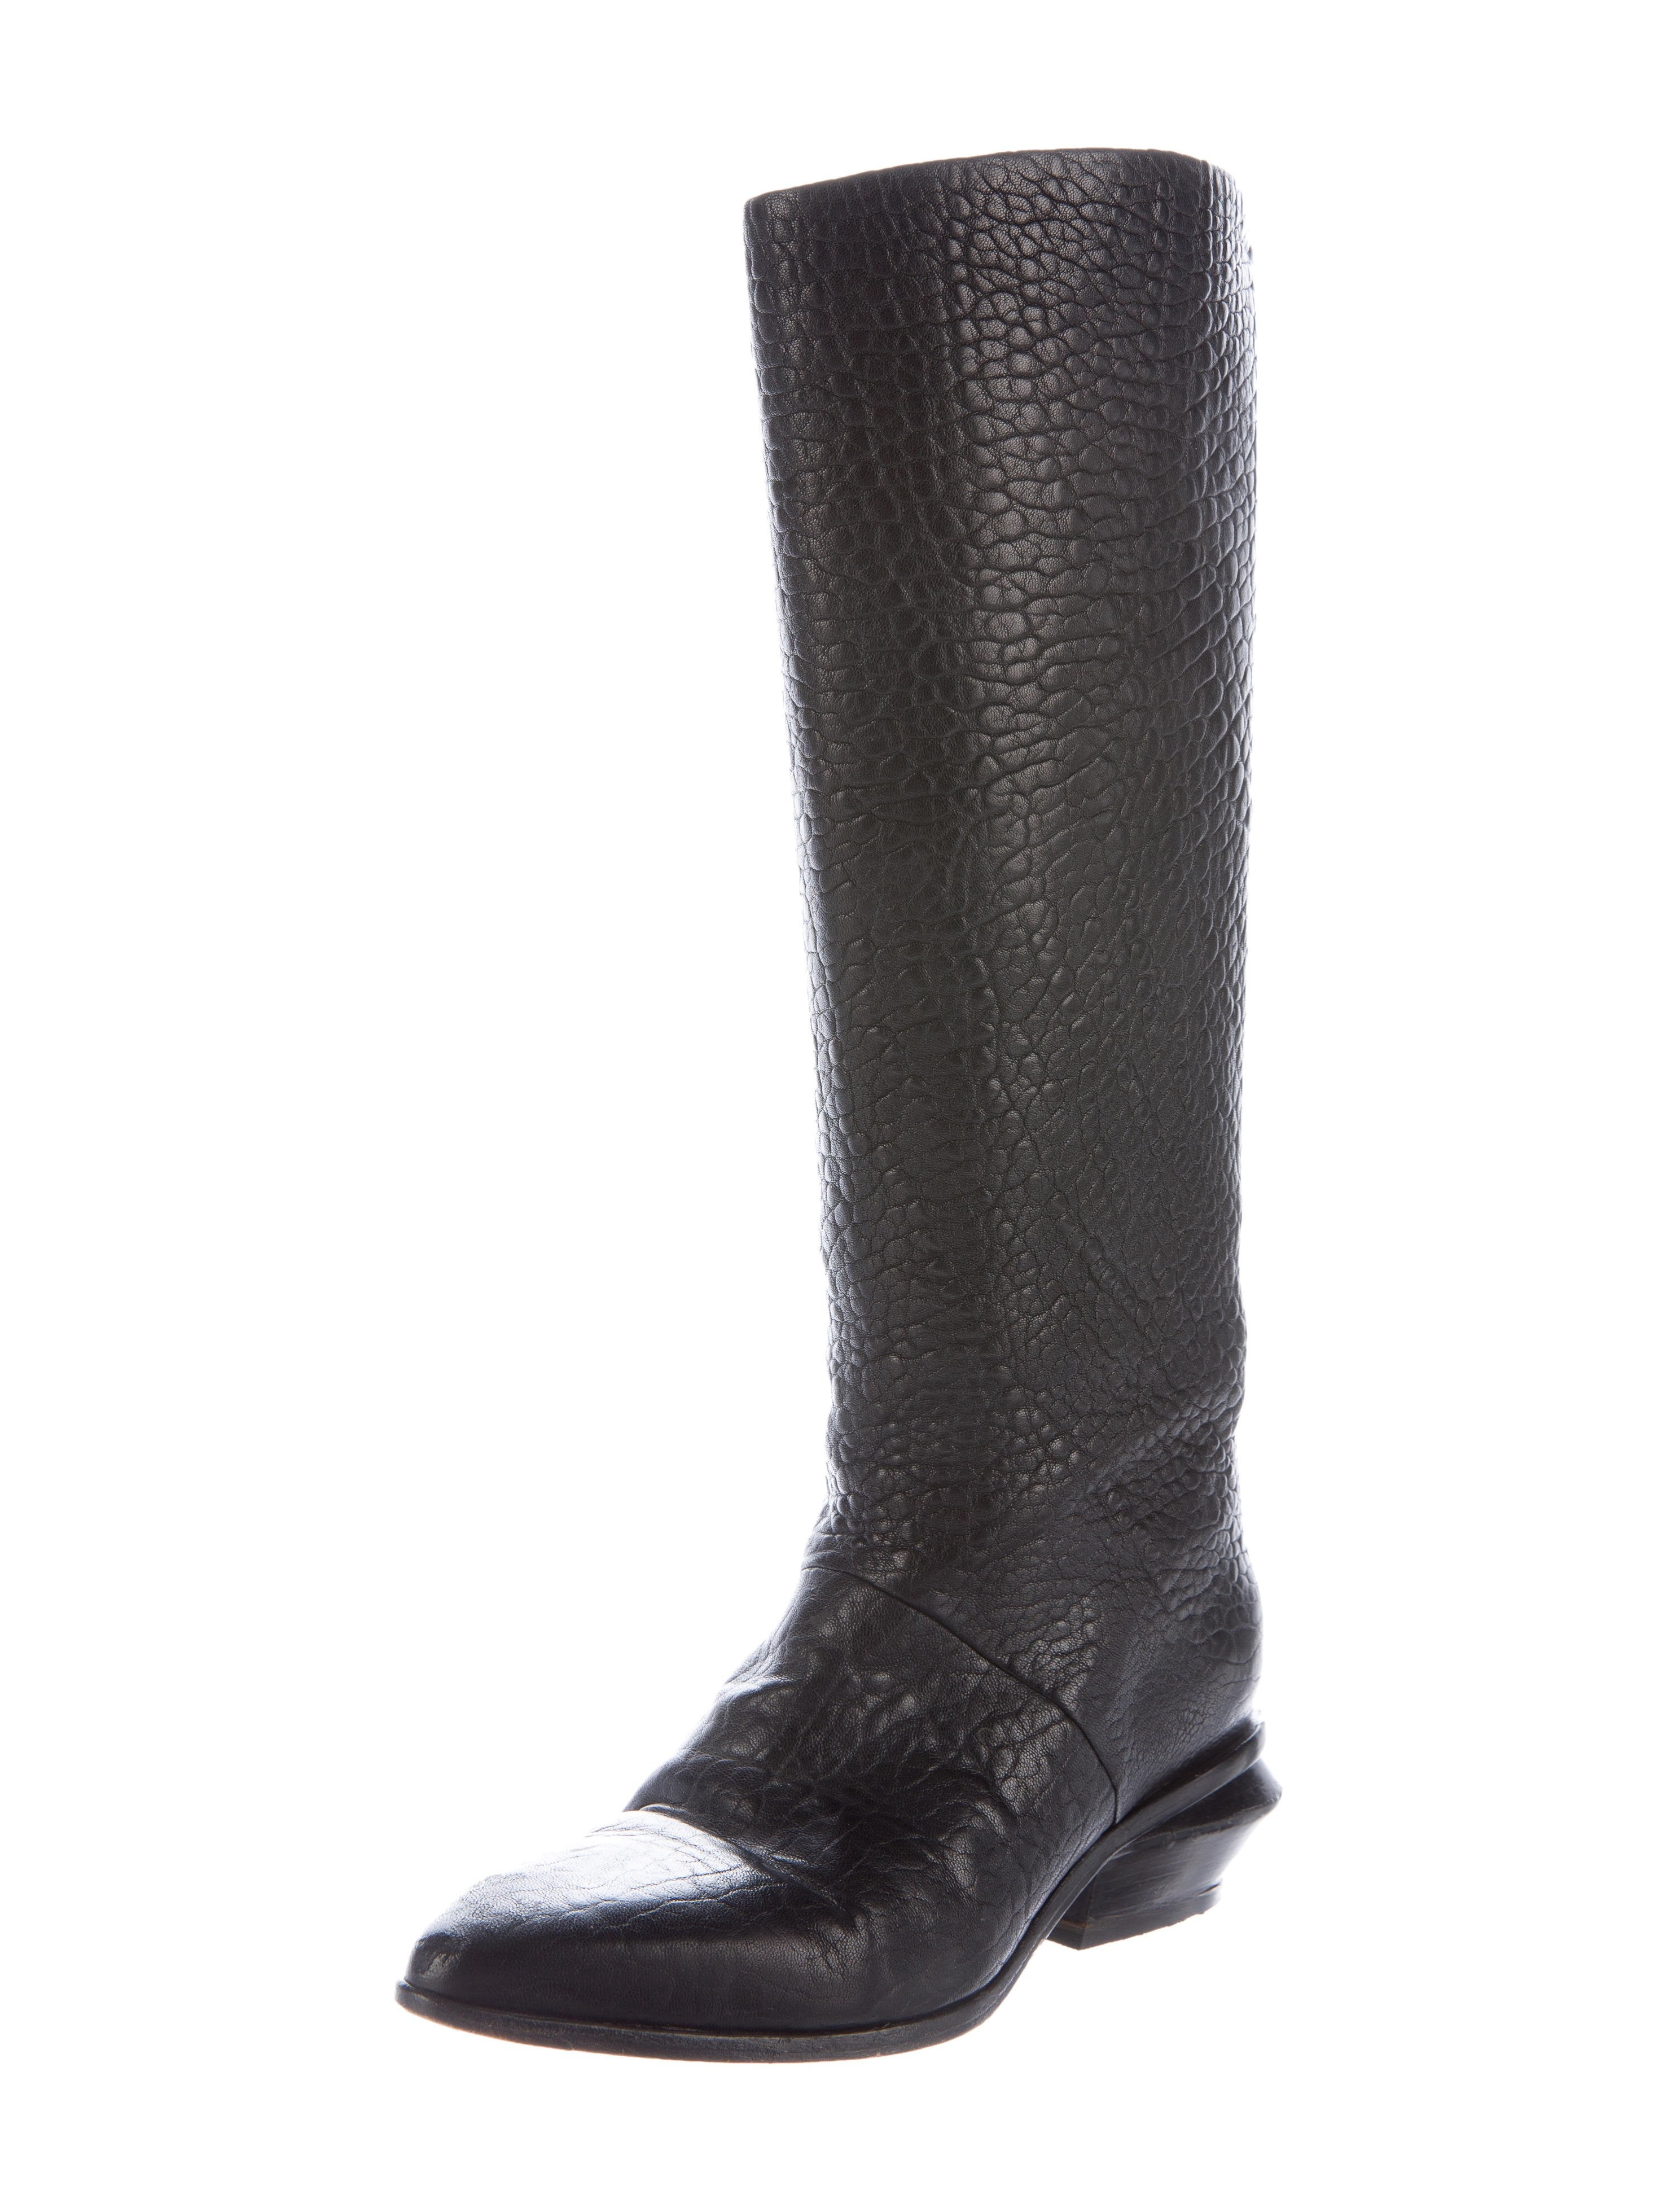 Find great deals on eBay for pointed boots. Shop with confidence.